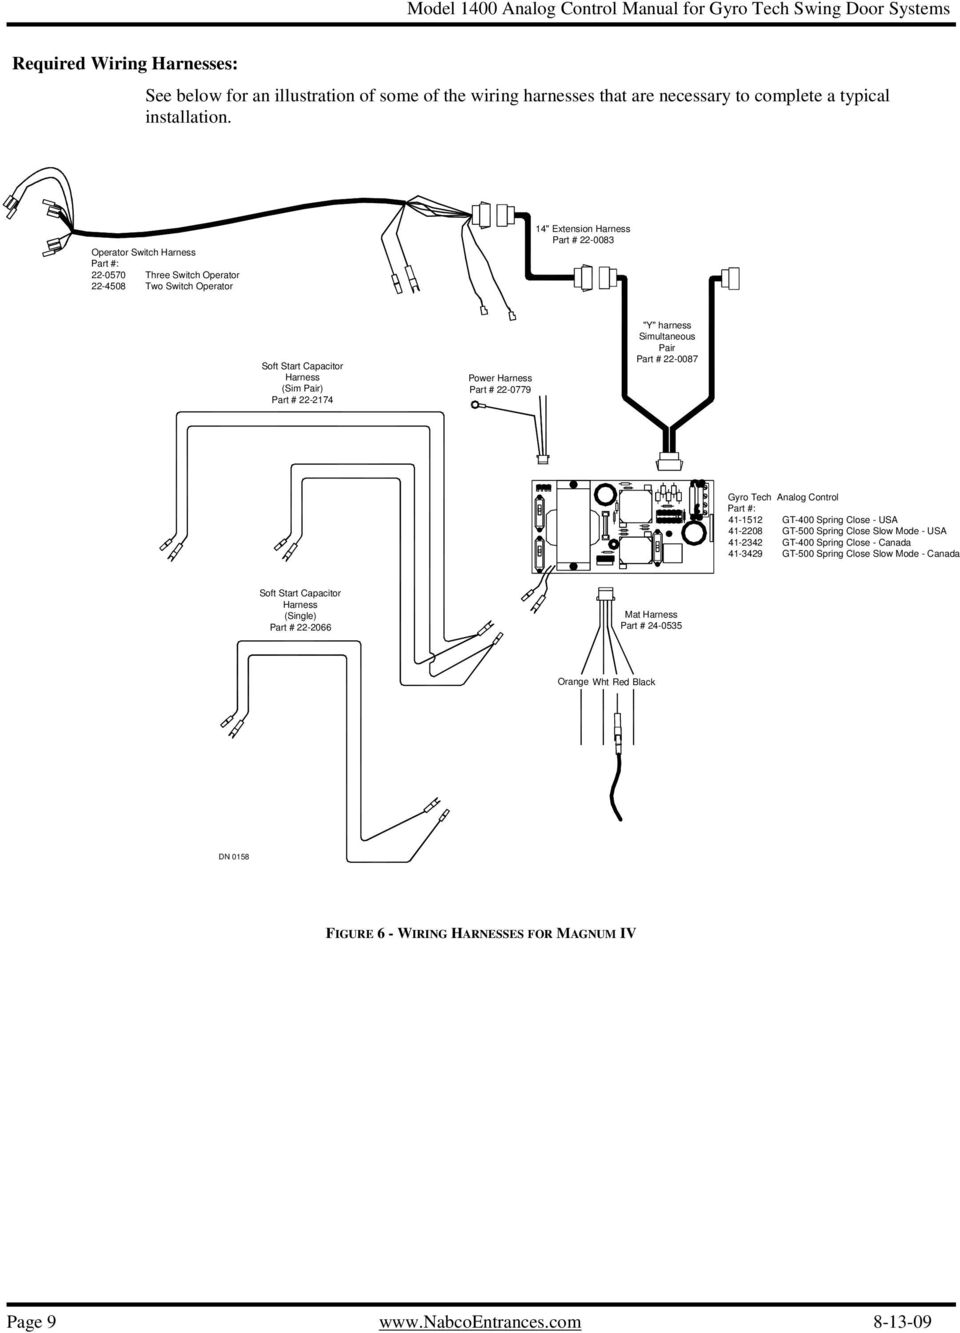 Carling Switch Wire Diagram Auto Electrical Wiring Diagram